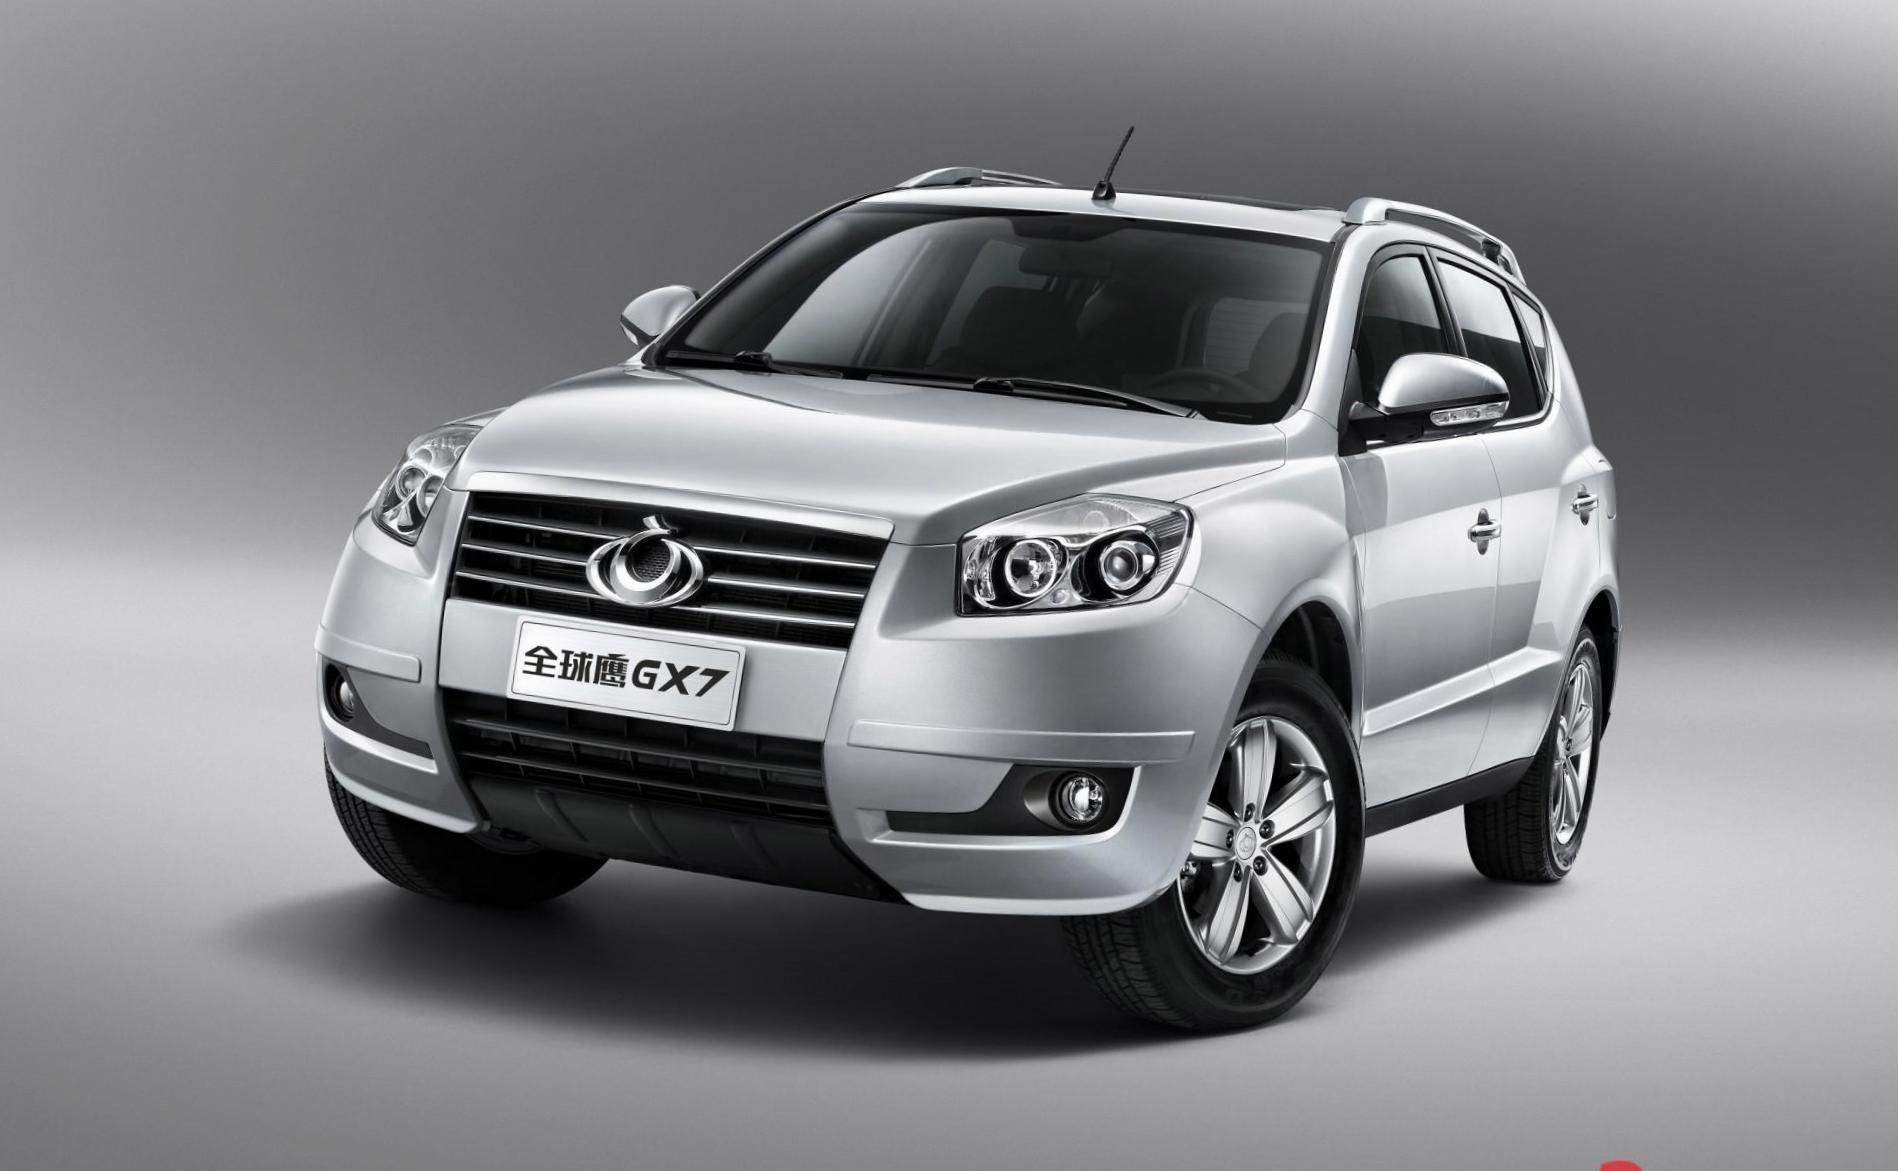 GX7 Geely reviews Автомобили